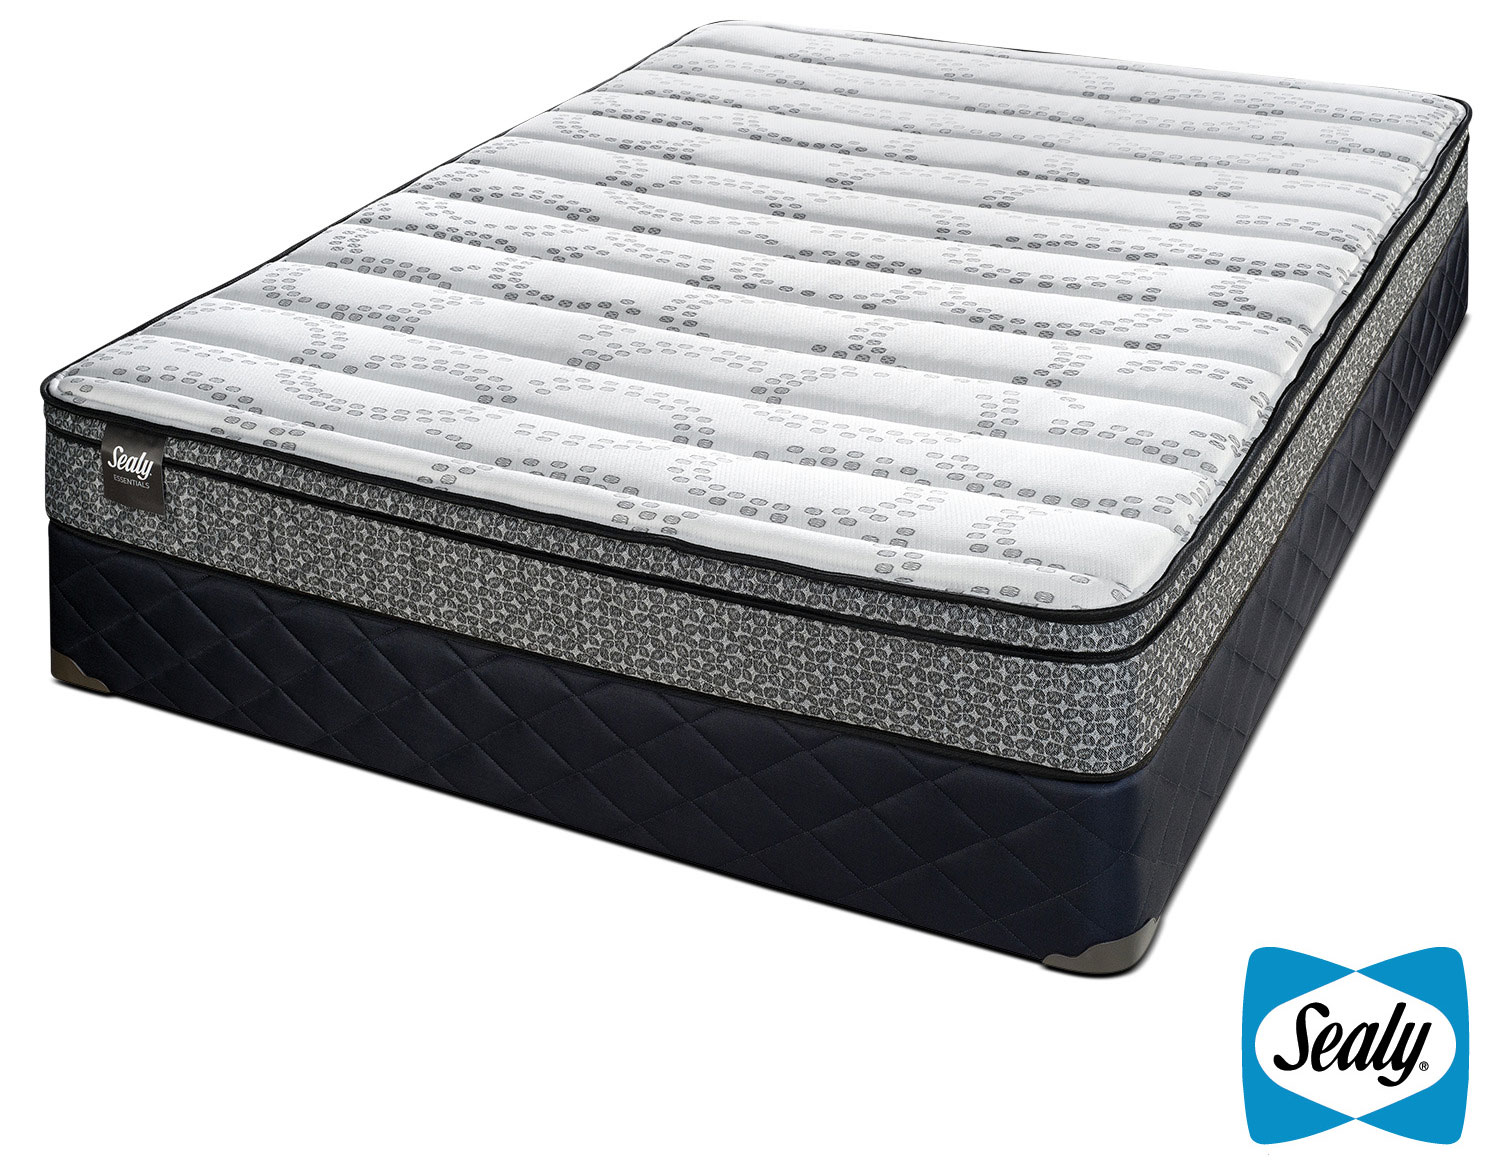 Sealy Imagine Cushion Firm Twin Mattress and Boxspring Set